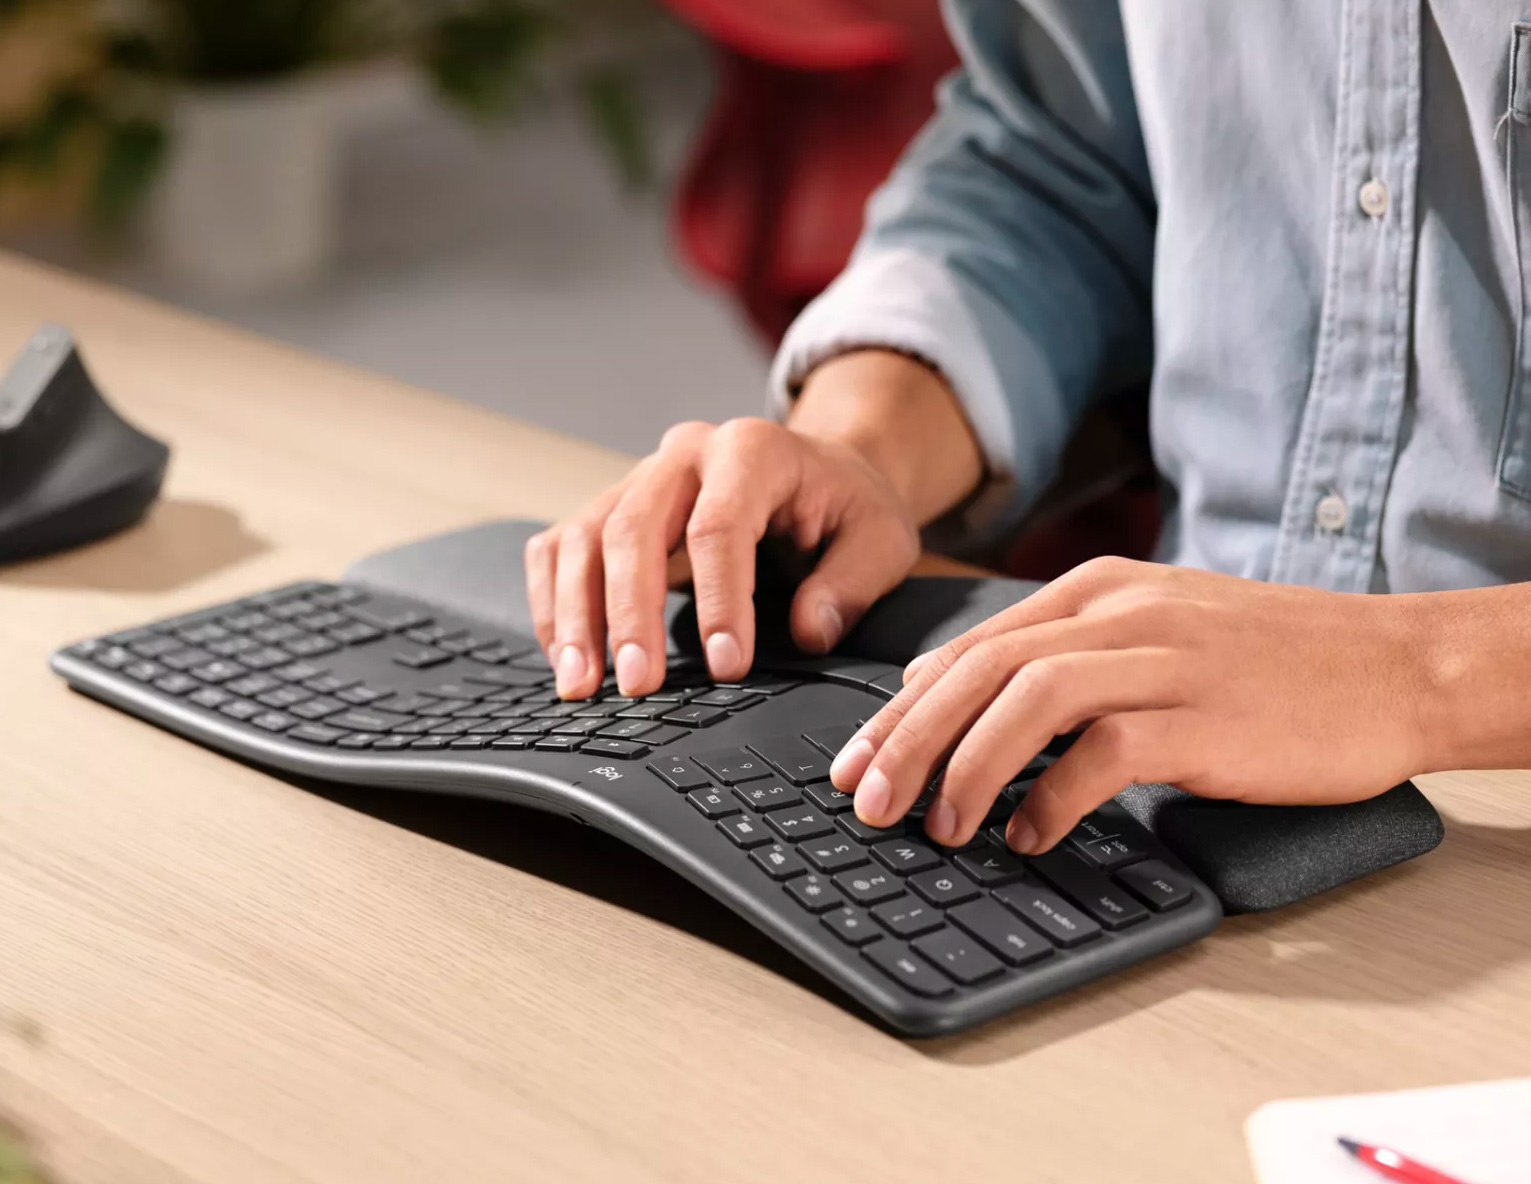 Logitech's Ergo K860 is a More Comfy Keyboard at werd.com